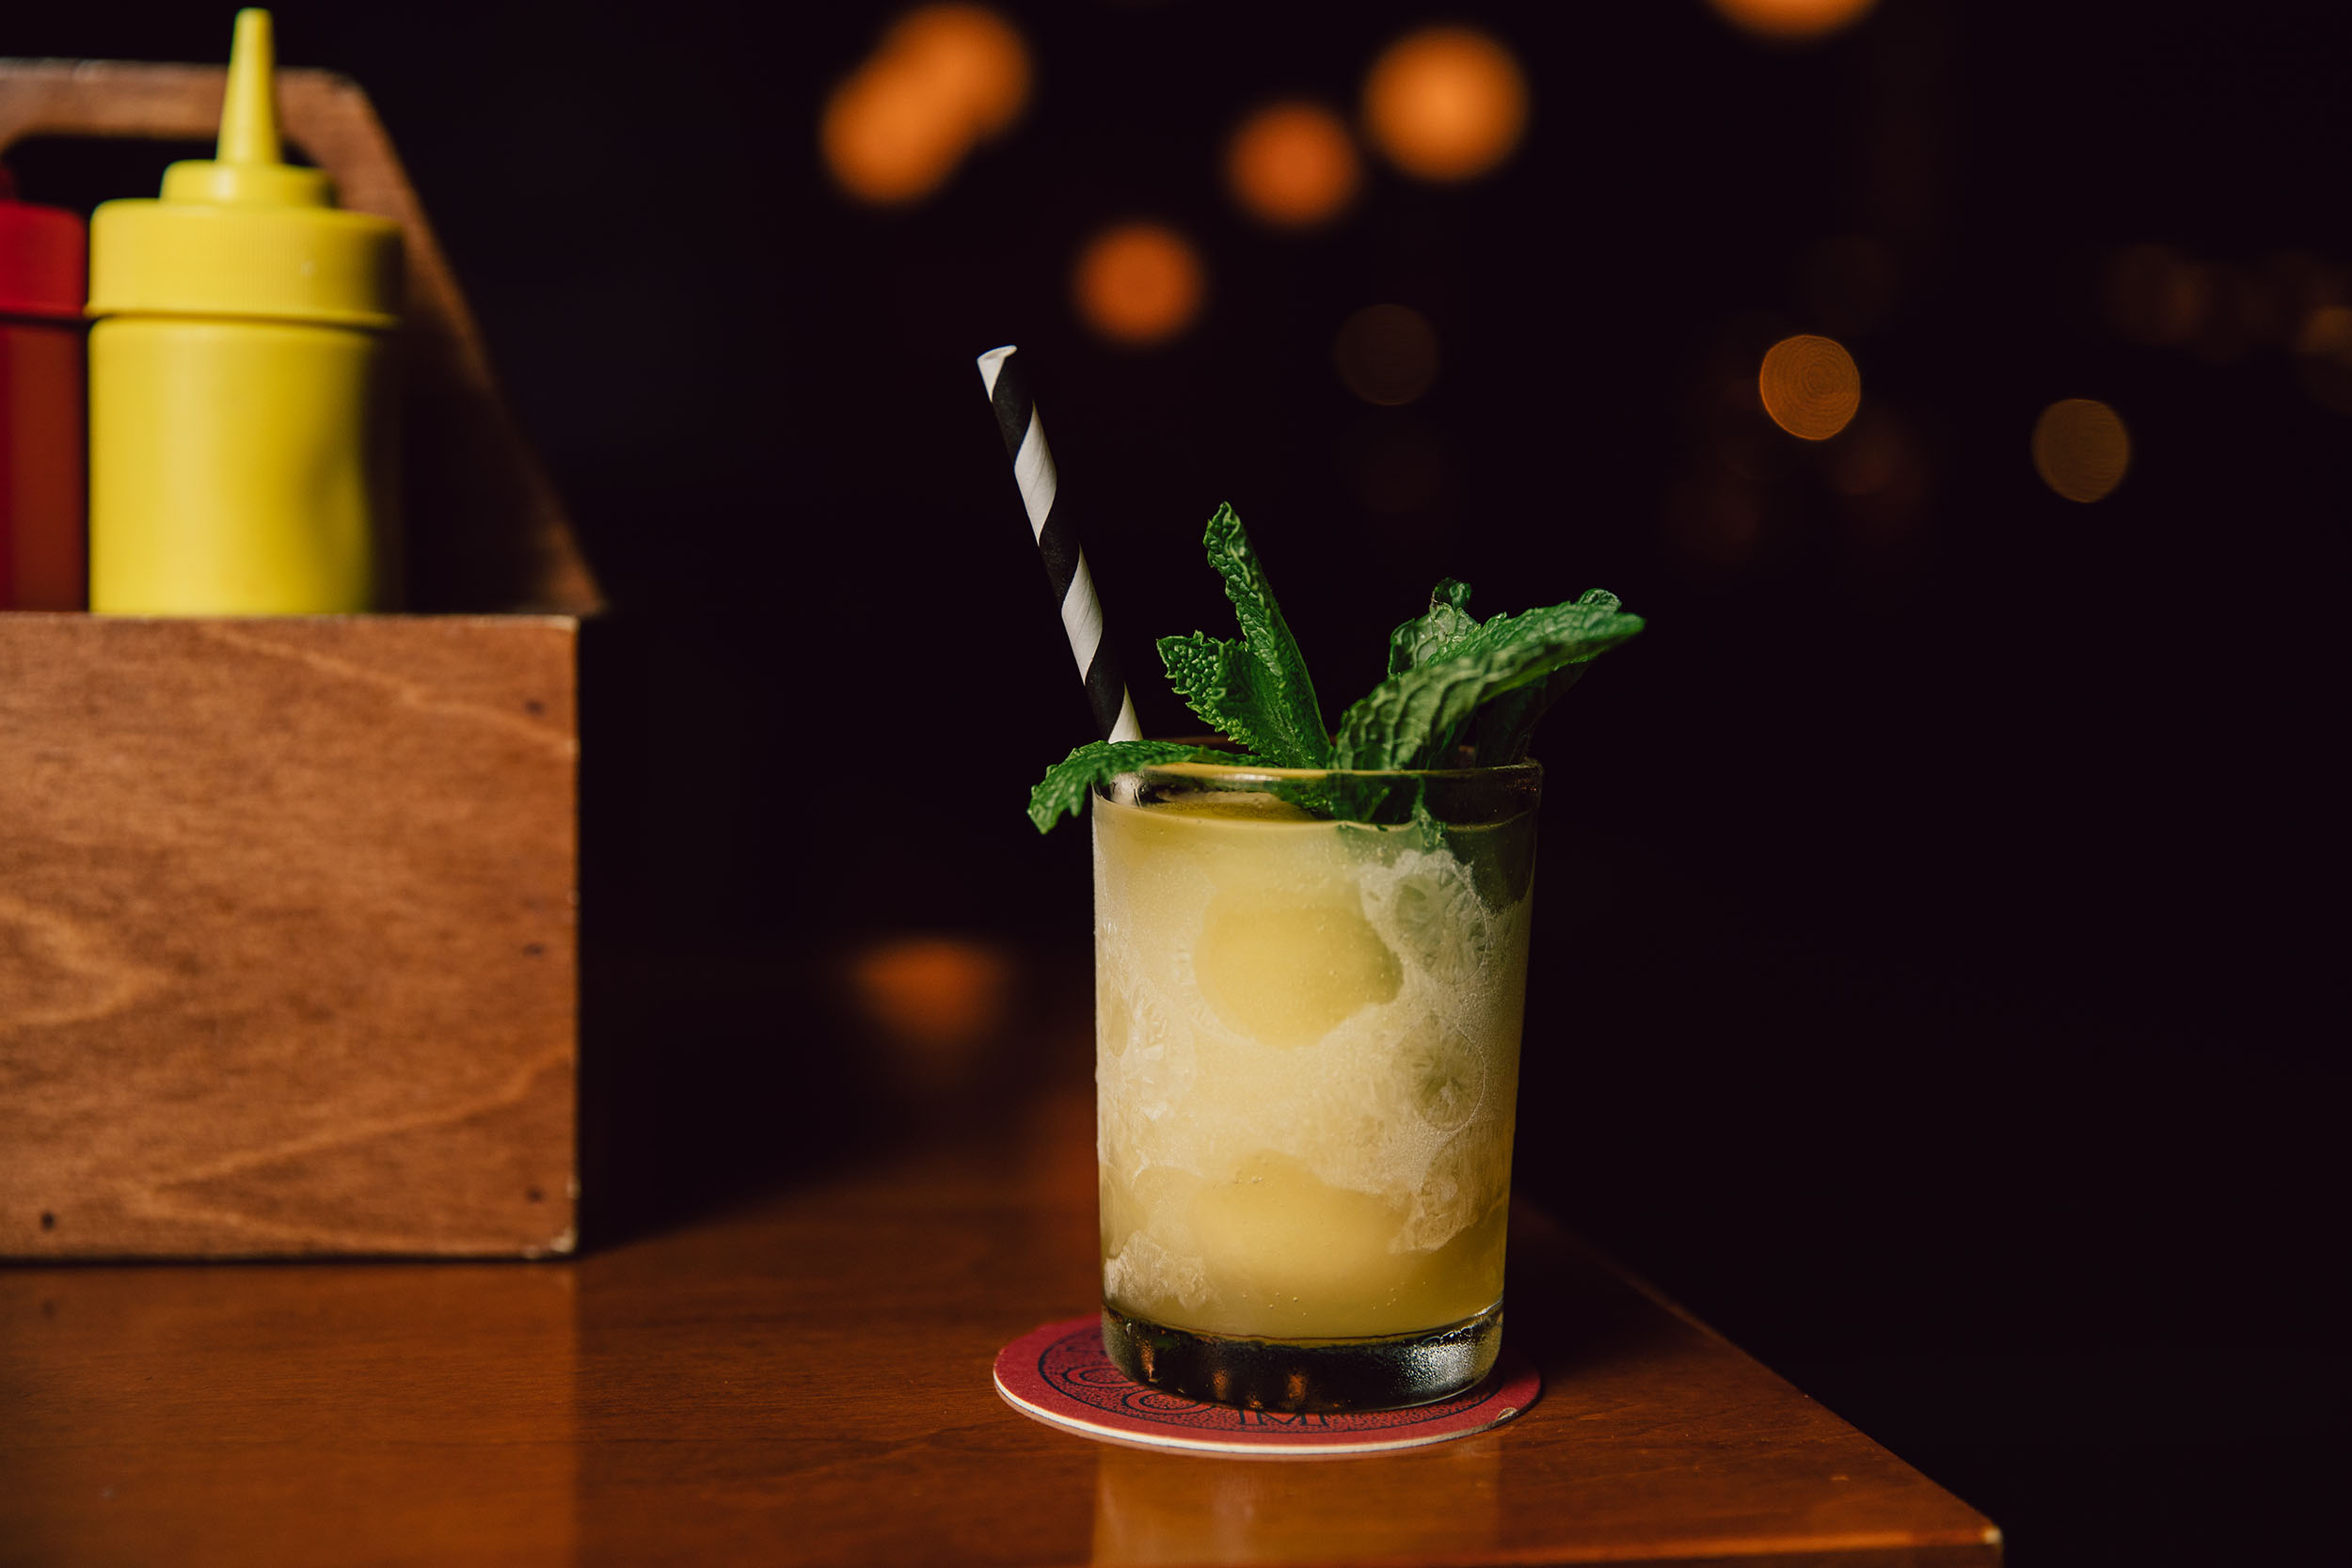 Using the Profoto A1 for Cocktail Photography